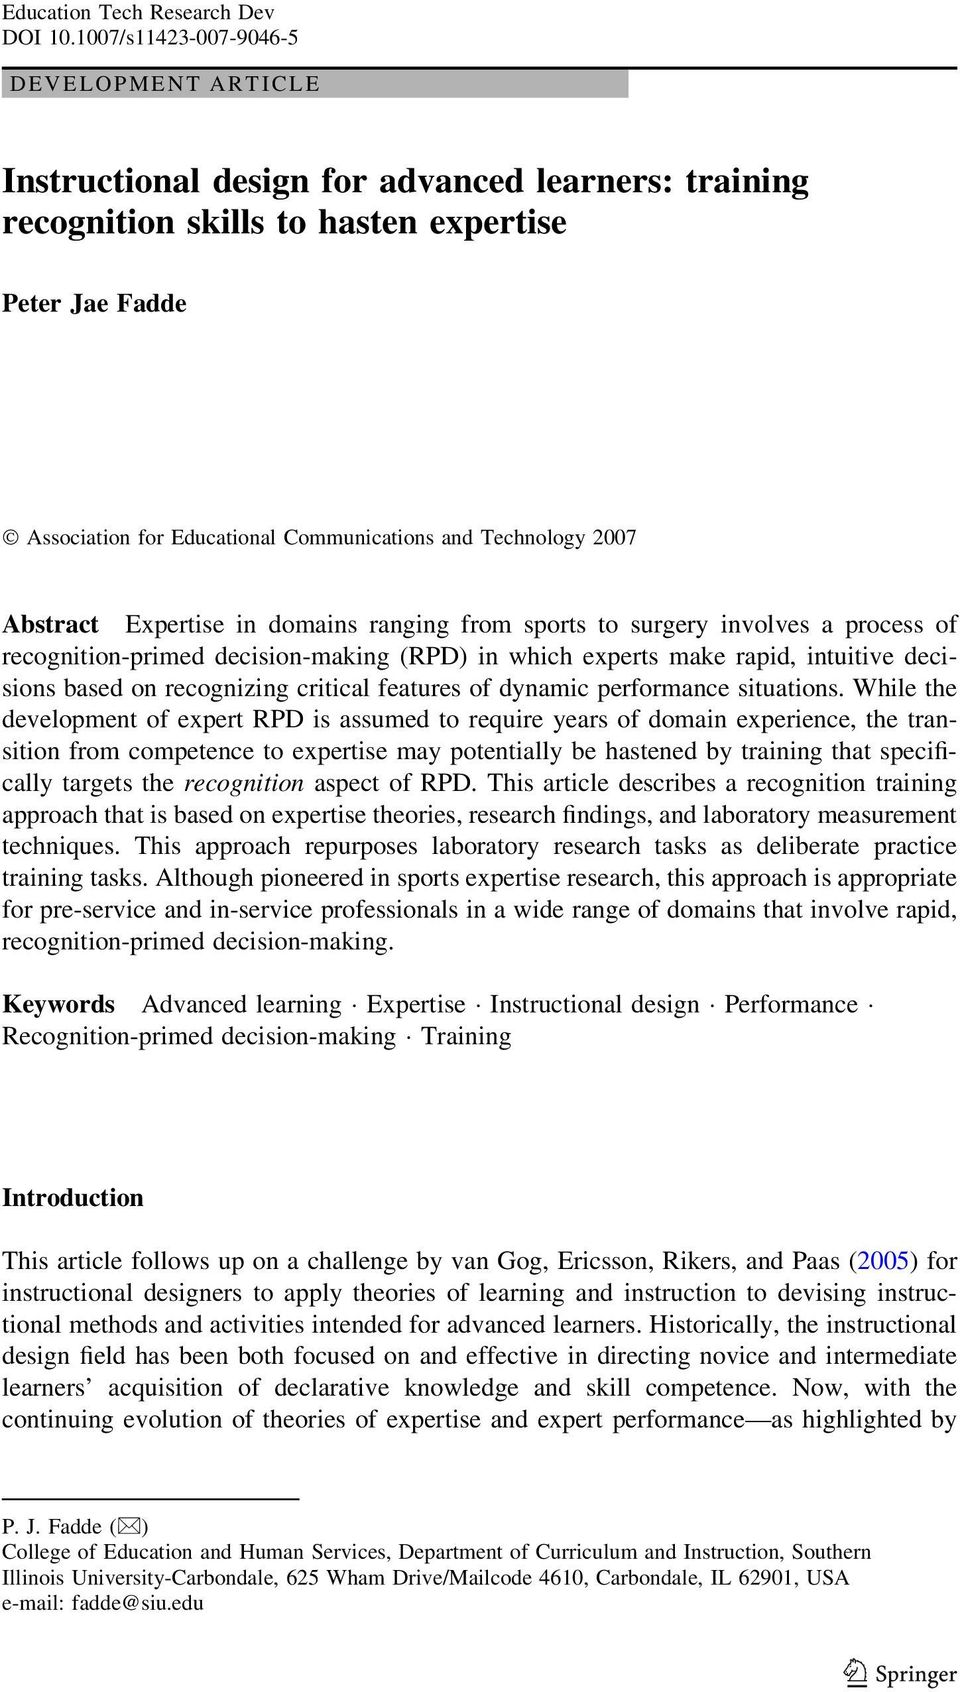 Technology 2007 Abstract Expertise in domains ranging from sports to surgery involves a process of recognition-primed decision-making (RPD) in which experts make rapid, intuitive decisions based on